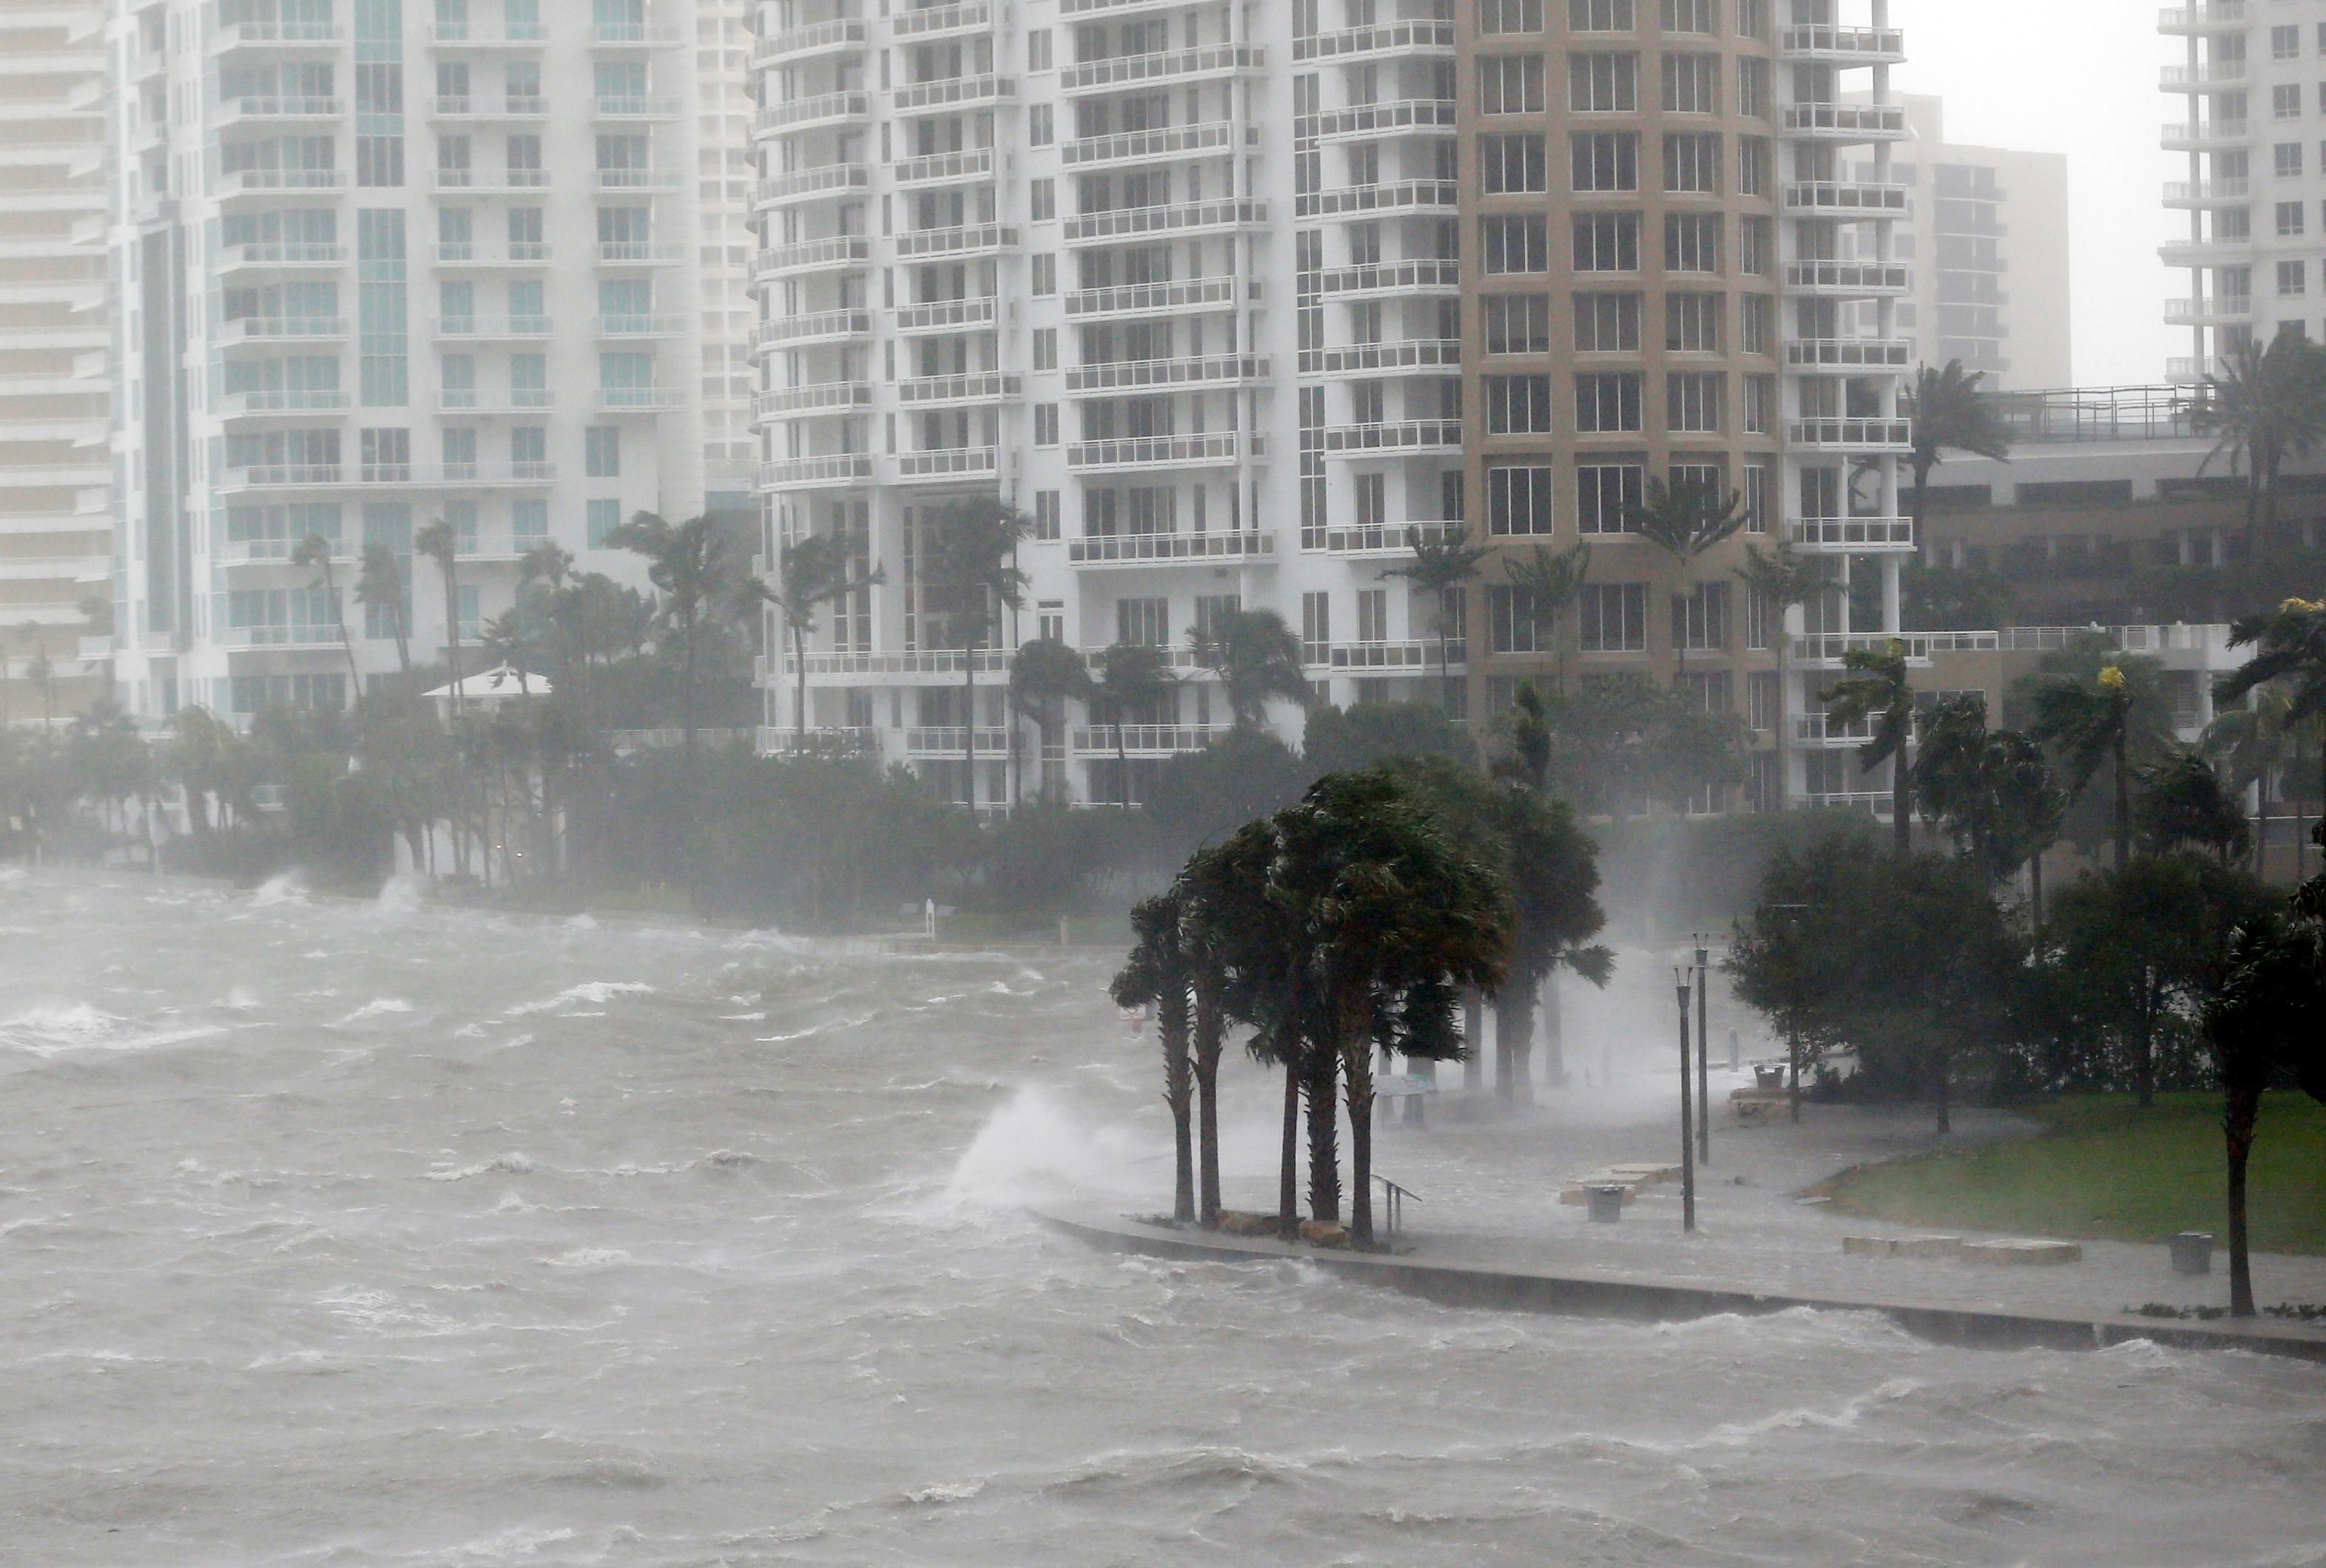 In this Sept. 10, 2017, photo, waves crash over a seawall at the mouth of the Miami River from Biscayne Bay, Fla., as Hurricane Irma passes by in Miami. Rising sea levels and fierce storms have failed to stop relentless population growth along U.S. coasts in recent years, a new Associated Press analysis shows. The latest punishing hurricanes scored bull's-eyes on two of the country's fastest growing regions: coastal Texas around Houston and resort areas of southwest Florida. (AP Photo/Wilfredo Lee)